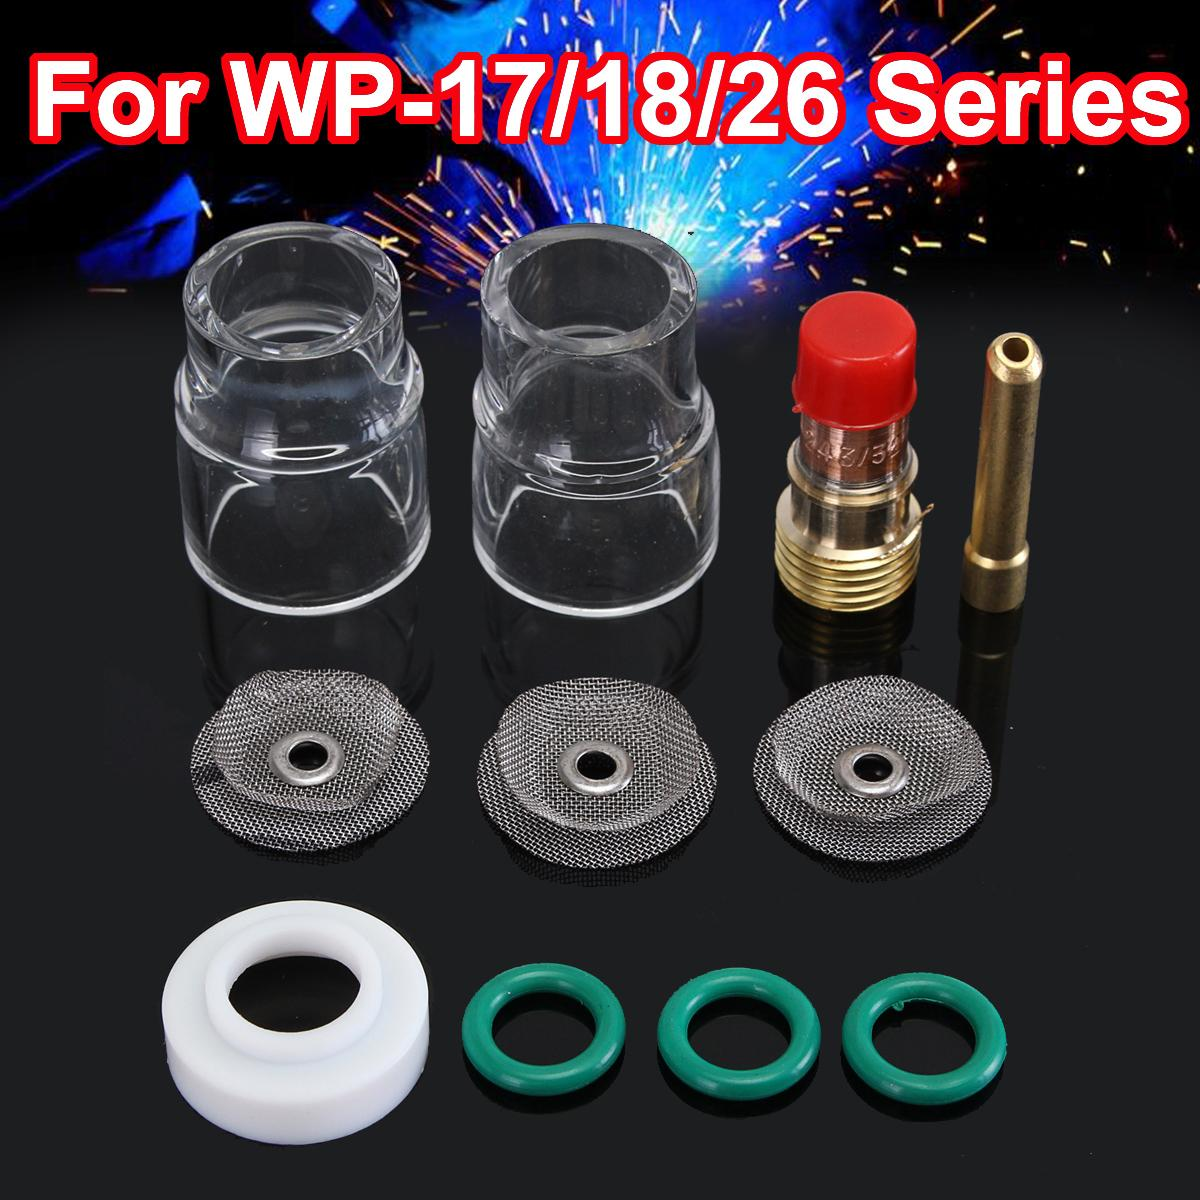 11pcs TIG Welding Torch Stubby Gas Lens Pyrex Cup Accessories Kit Tools For WP-17/18/26 Torches Gas Lens 3/32